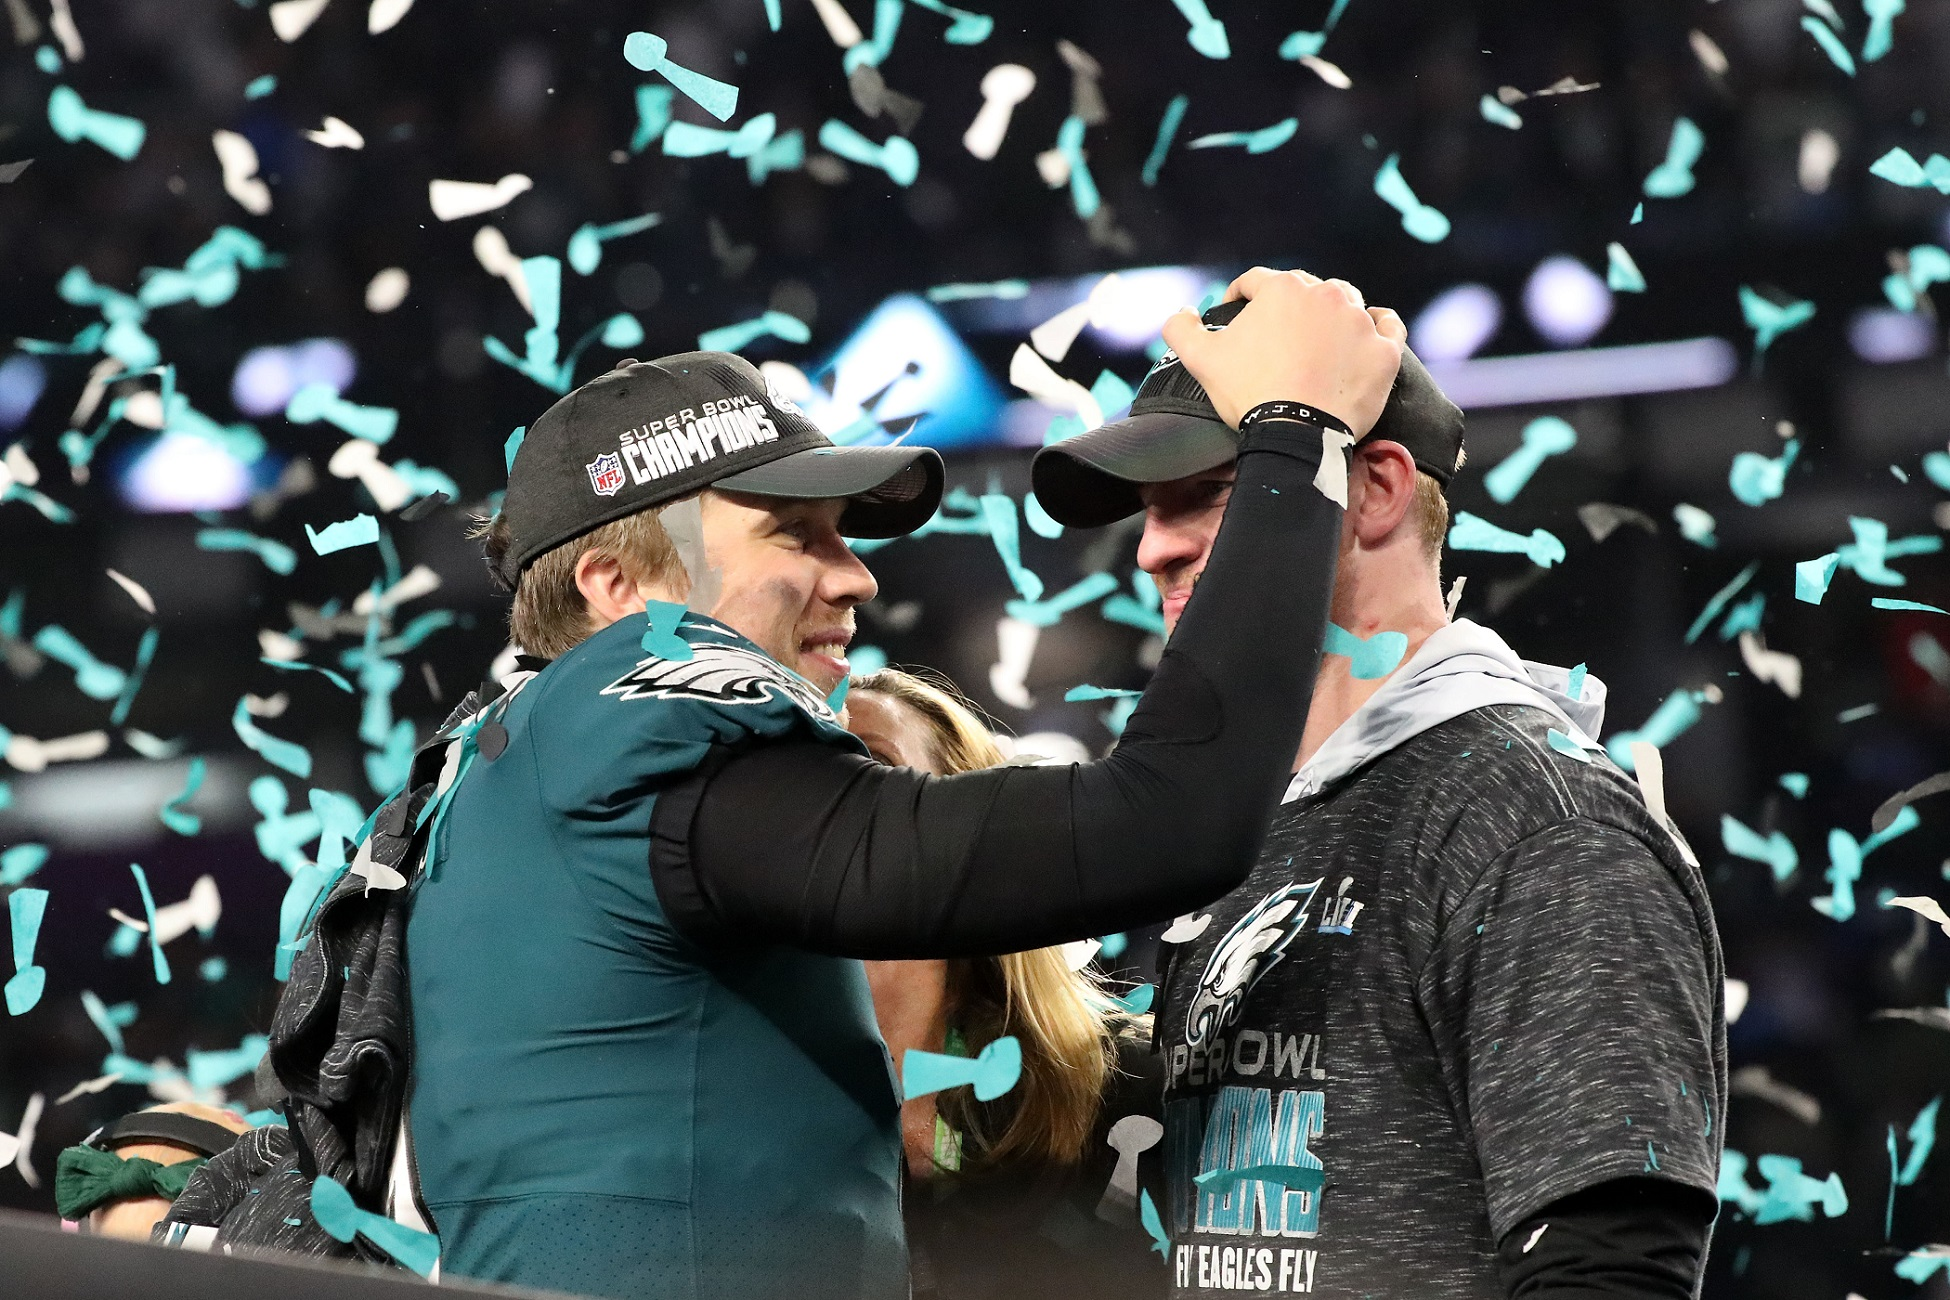 Matthew McConaughey takes out newspaper ad congratulating Nick Foles